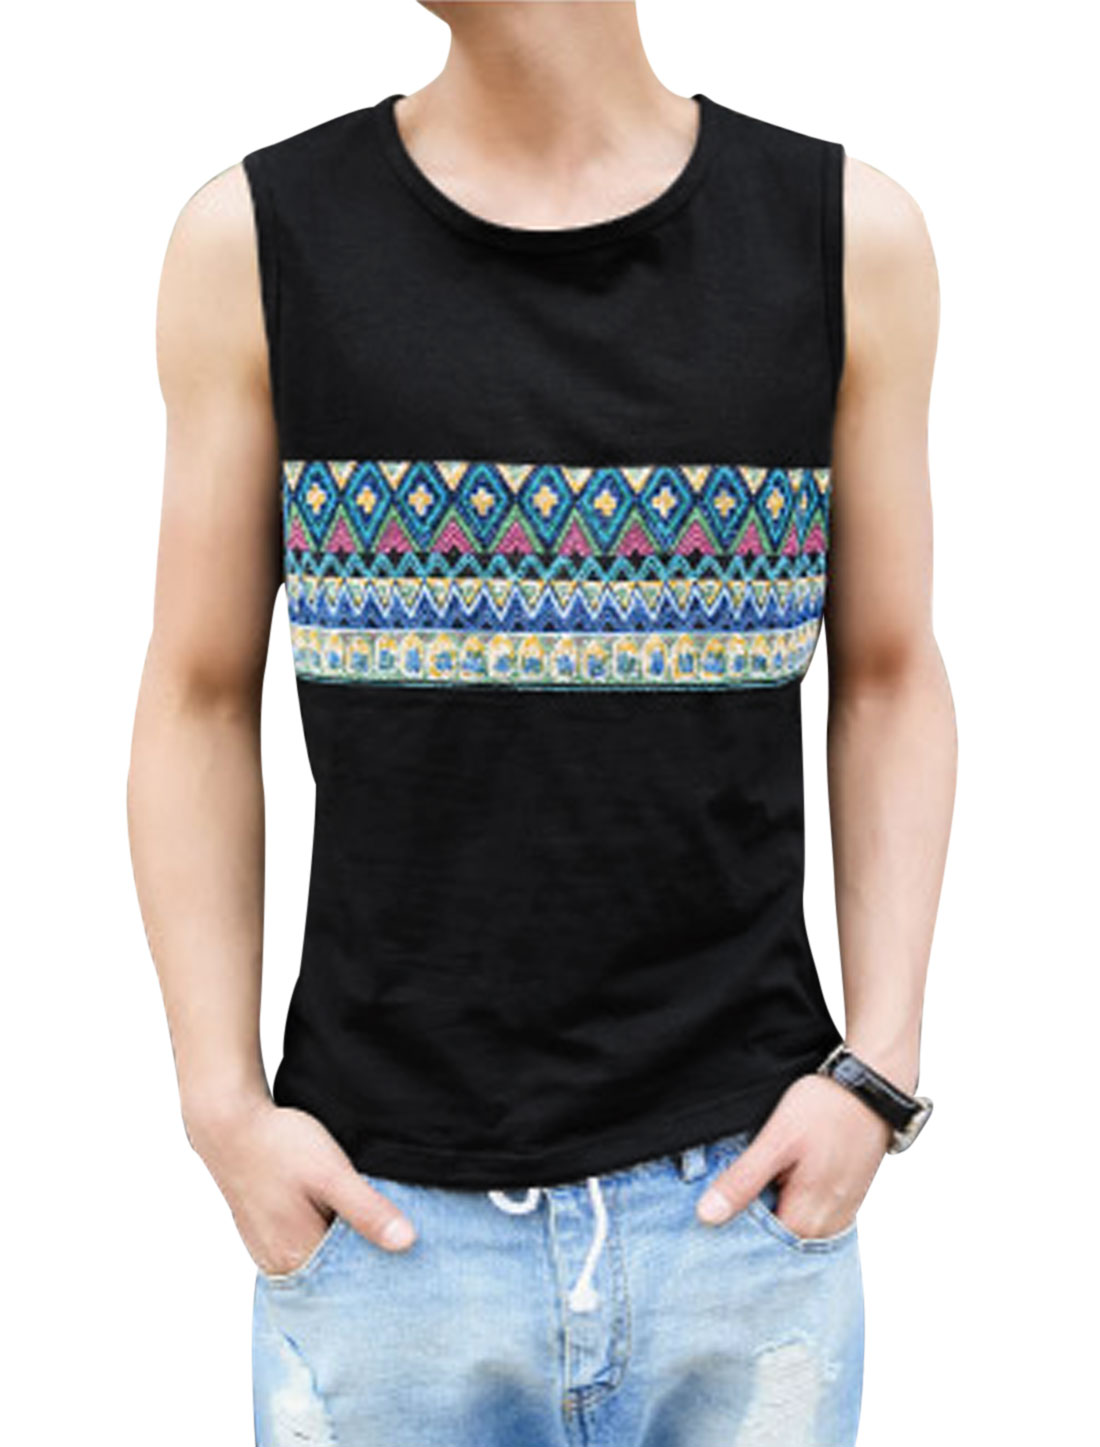 Men Fashion Sleeveless Panel Zigzag Pattern Tank Top Black M